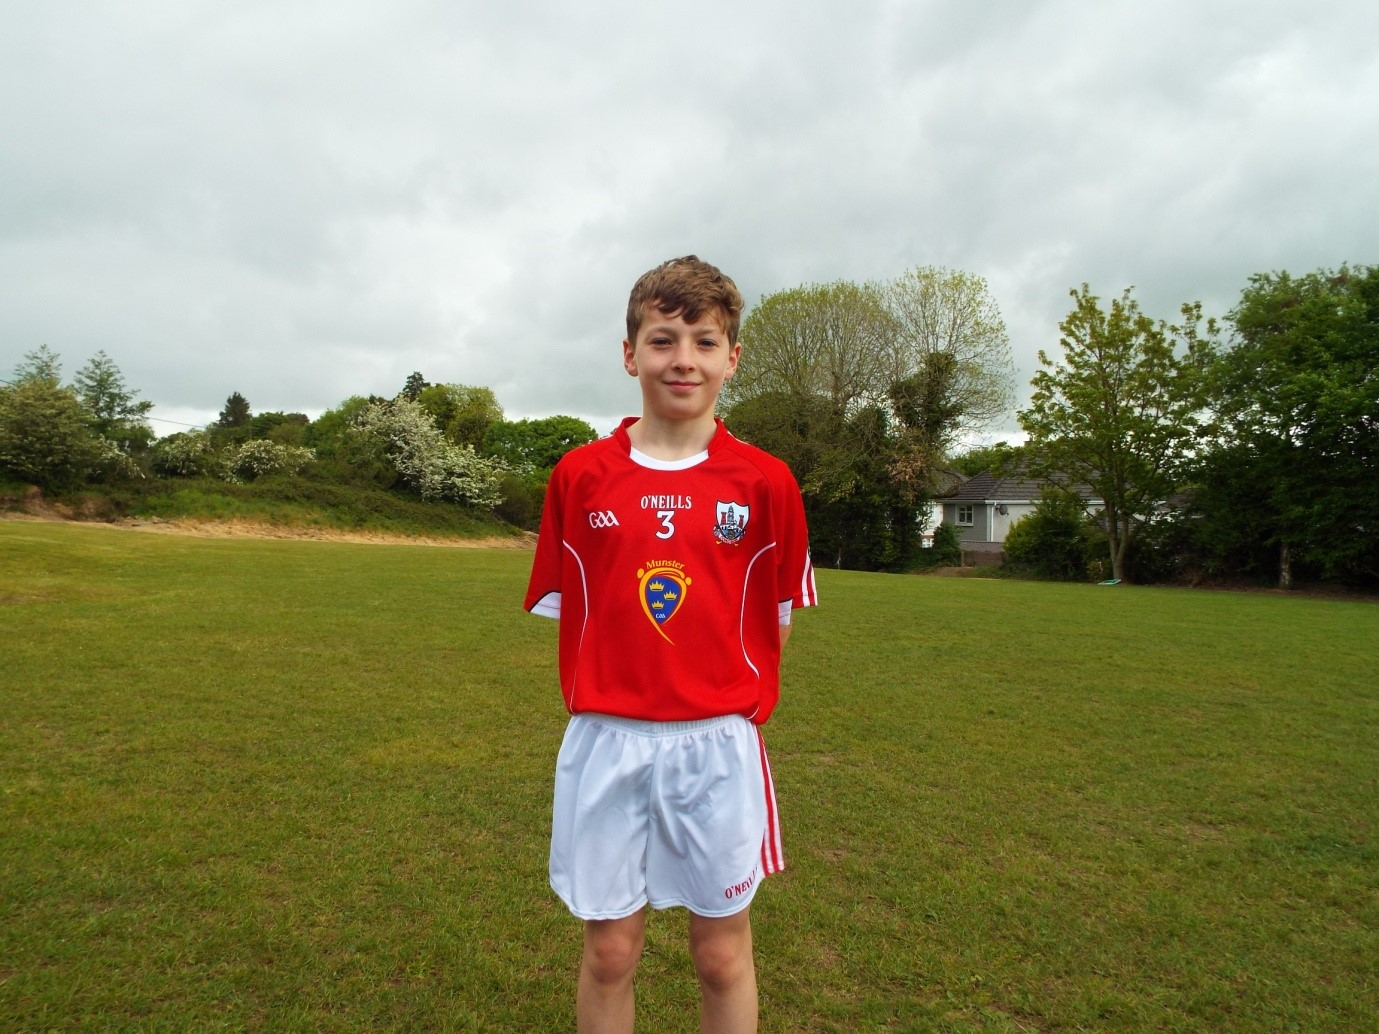 Kevin Fitzpatrick, who represented Cork in Dungarvan during the Cork v Waterford MSFC Quarter Final